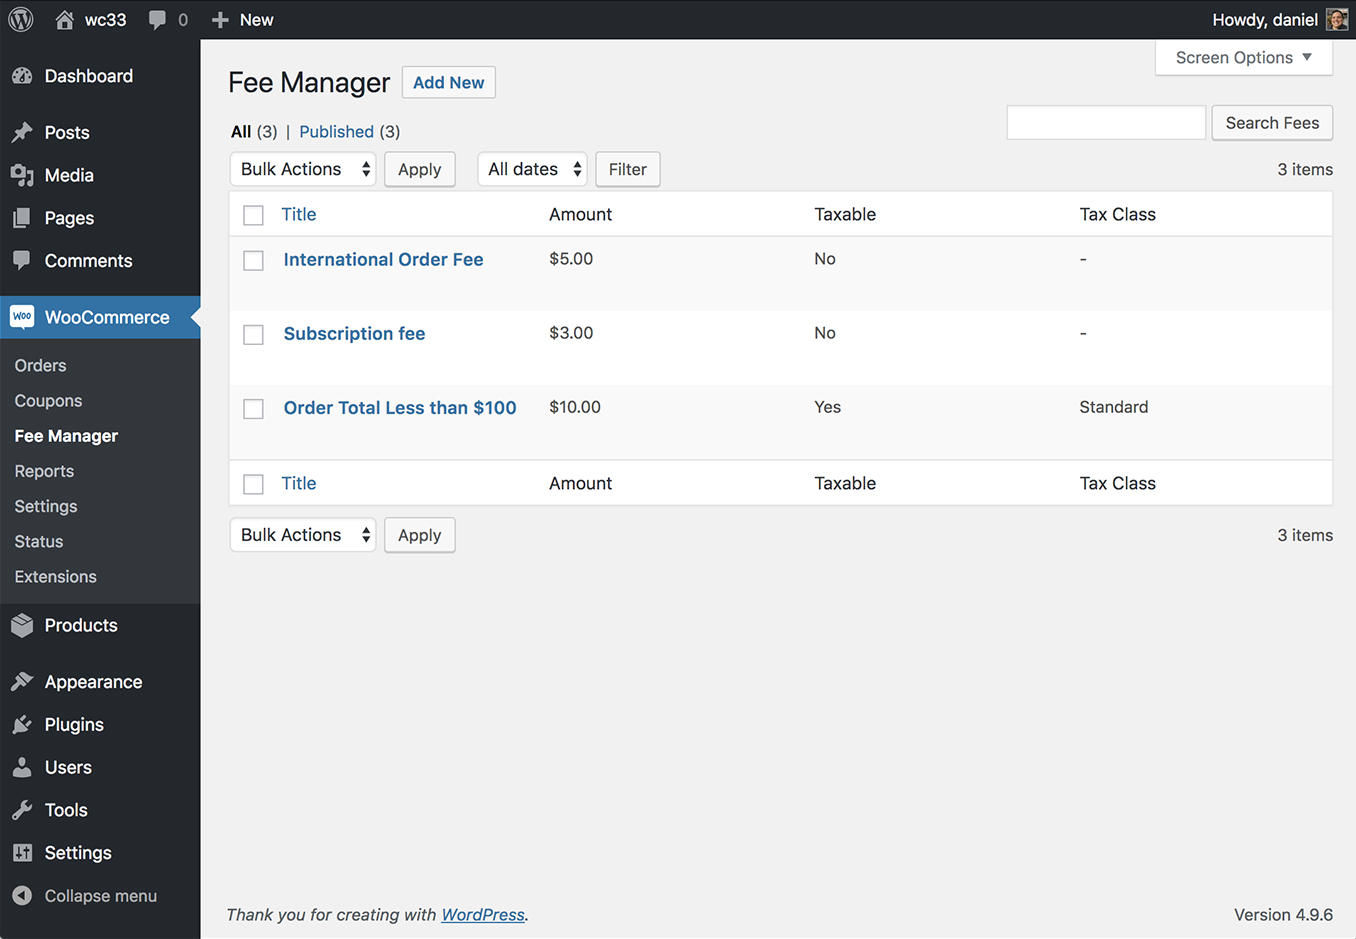 WooCommerce Fee Manager - All Fees